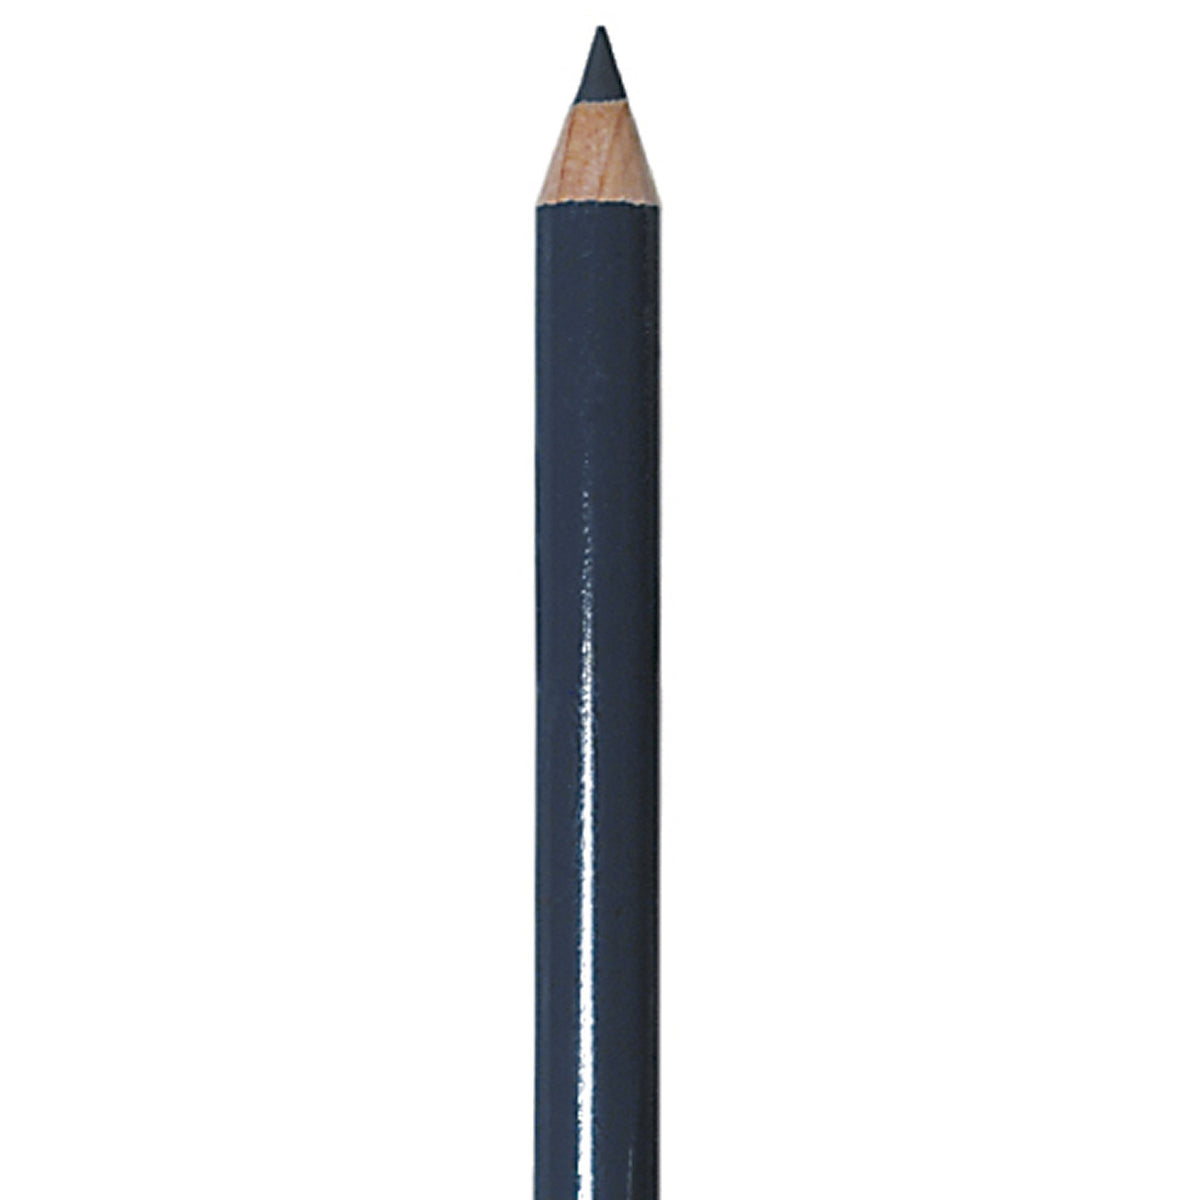 Grimas Pro Make-up Pencils - Eye, Brow & Lip